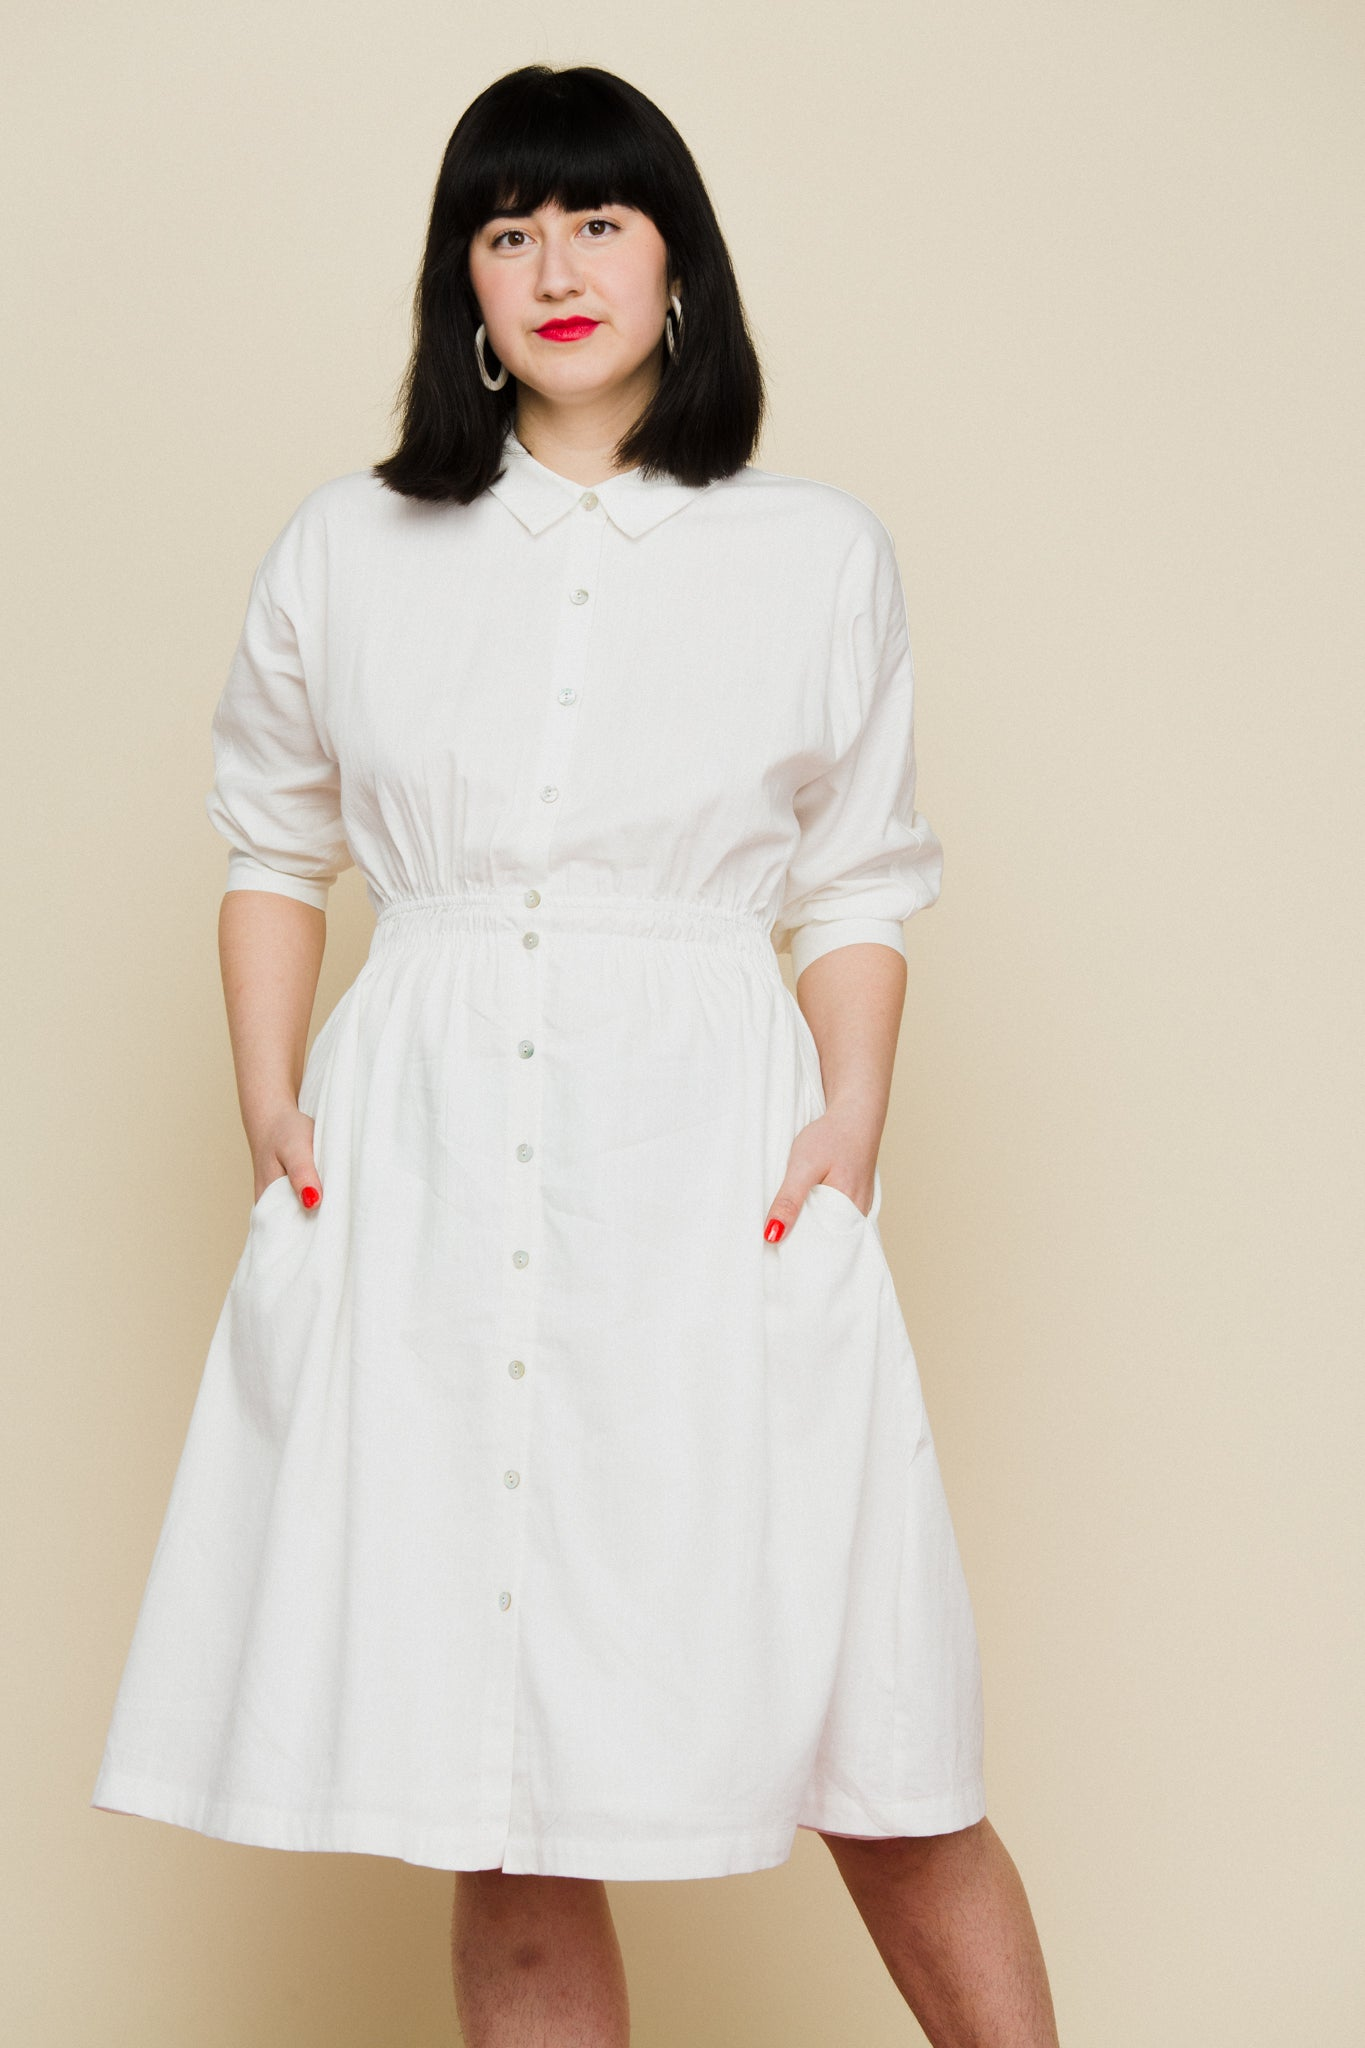 white linen cotton blend dress from mo: vint vintage inspired modern simple midi dress wing sleeve quarter sleeve spring dress white dress